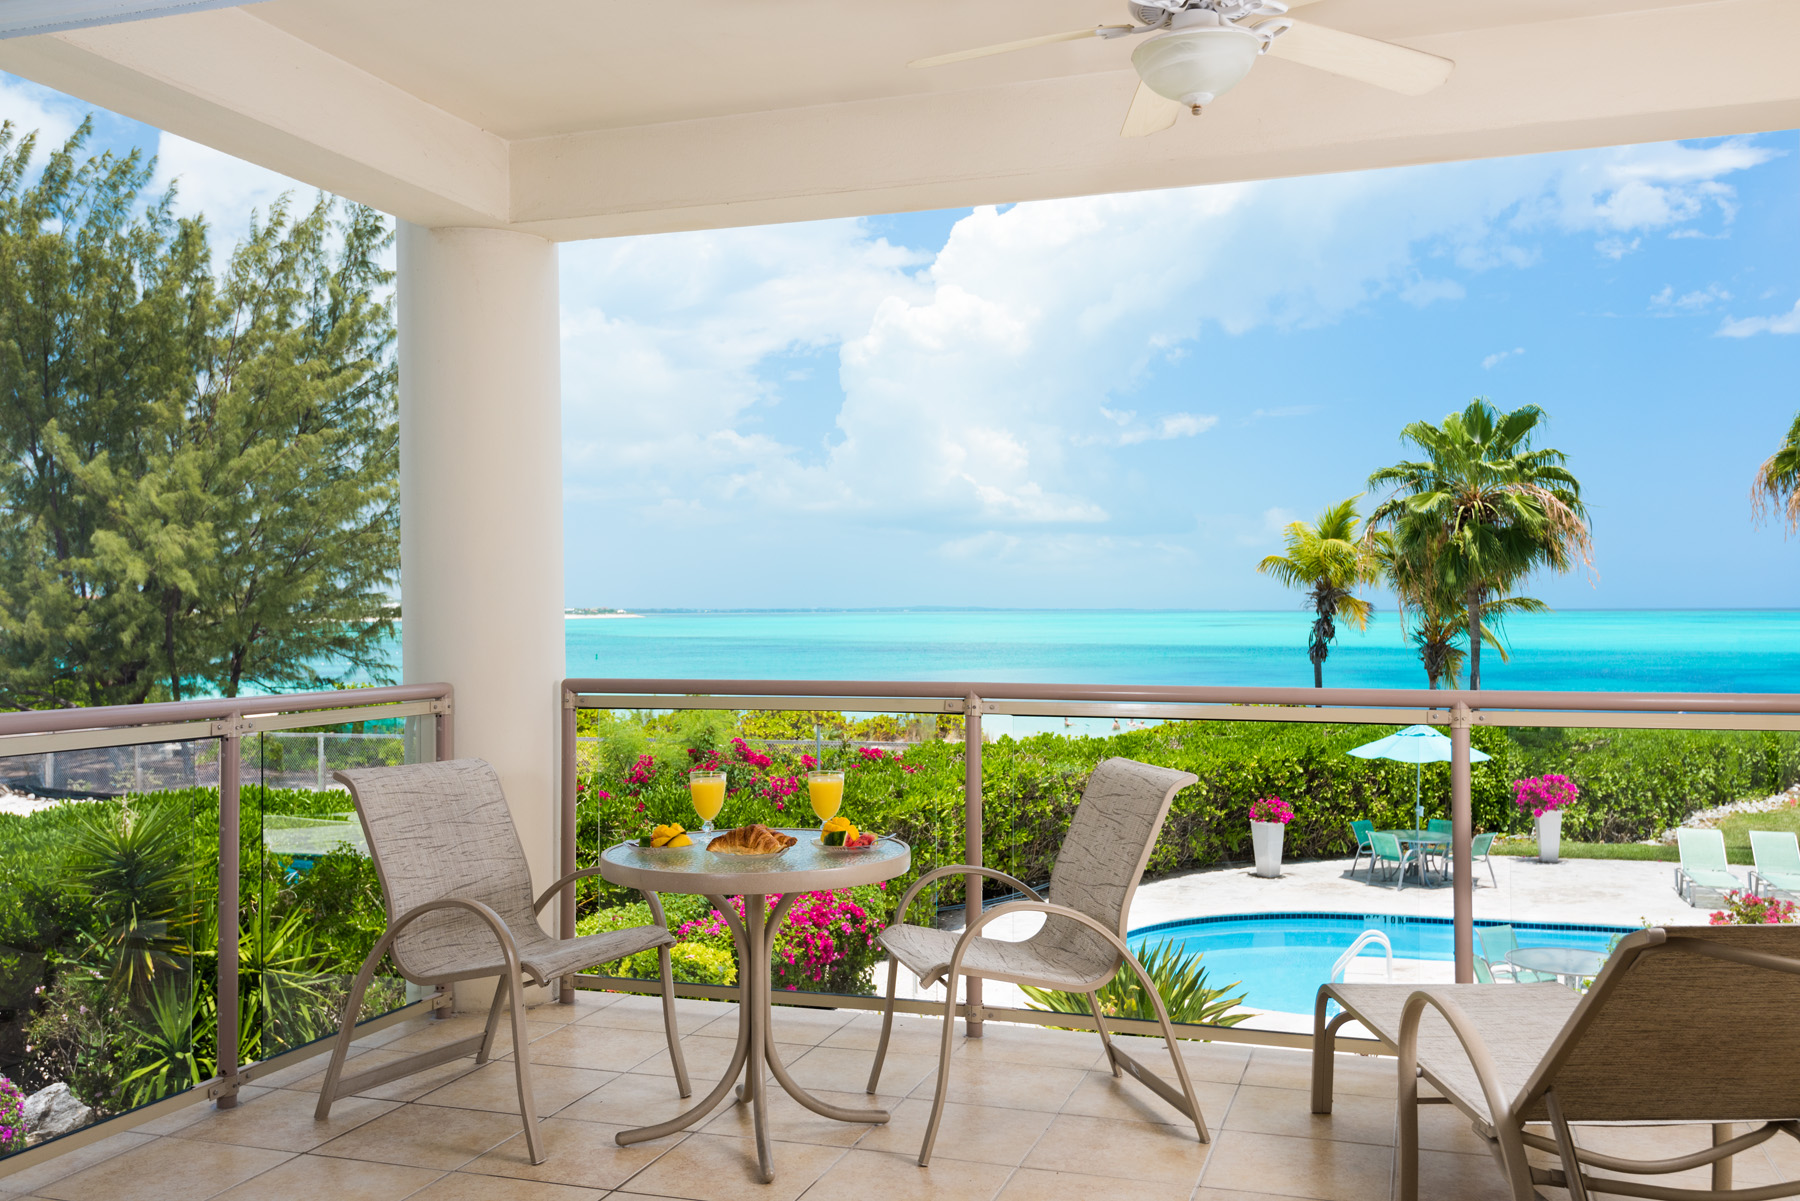 Additional photo for property listing at Coral Gardens - Suite 4202 Beachfront Grace Bay, Providenciales TC Turks And Caicos Islands